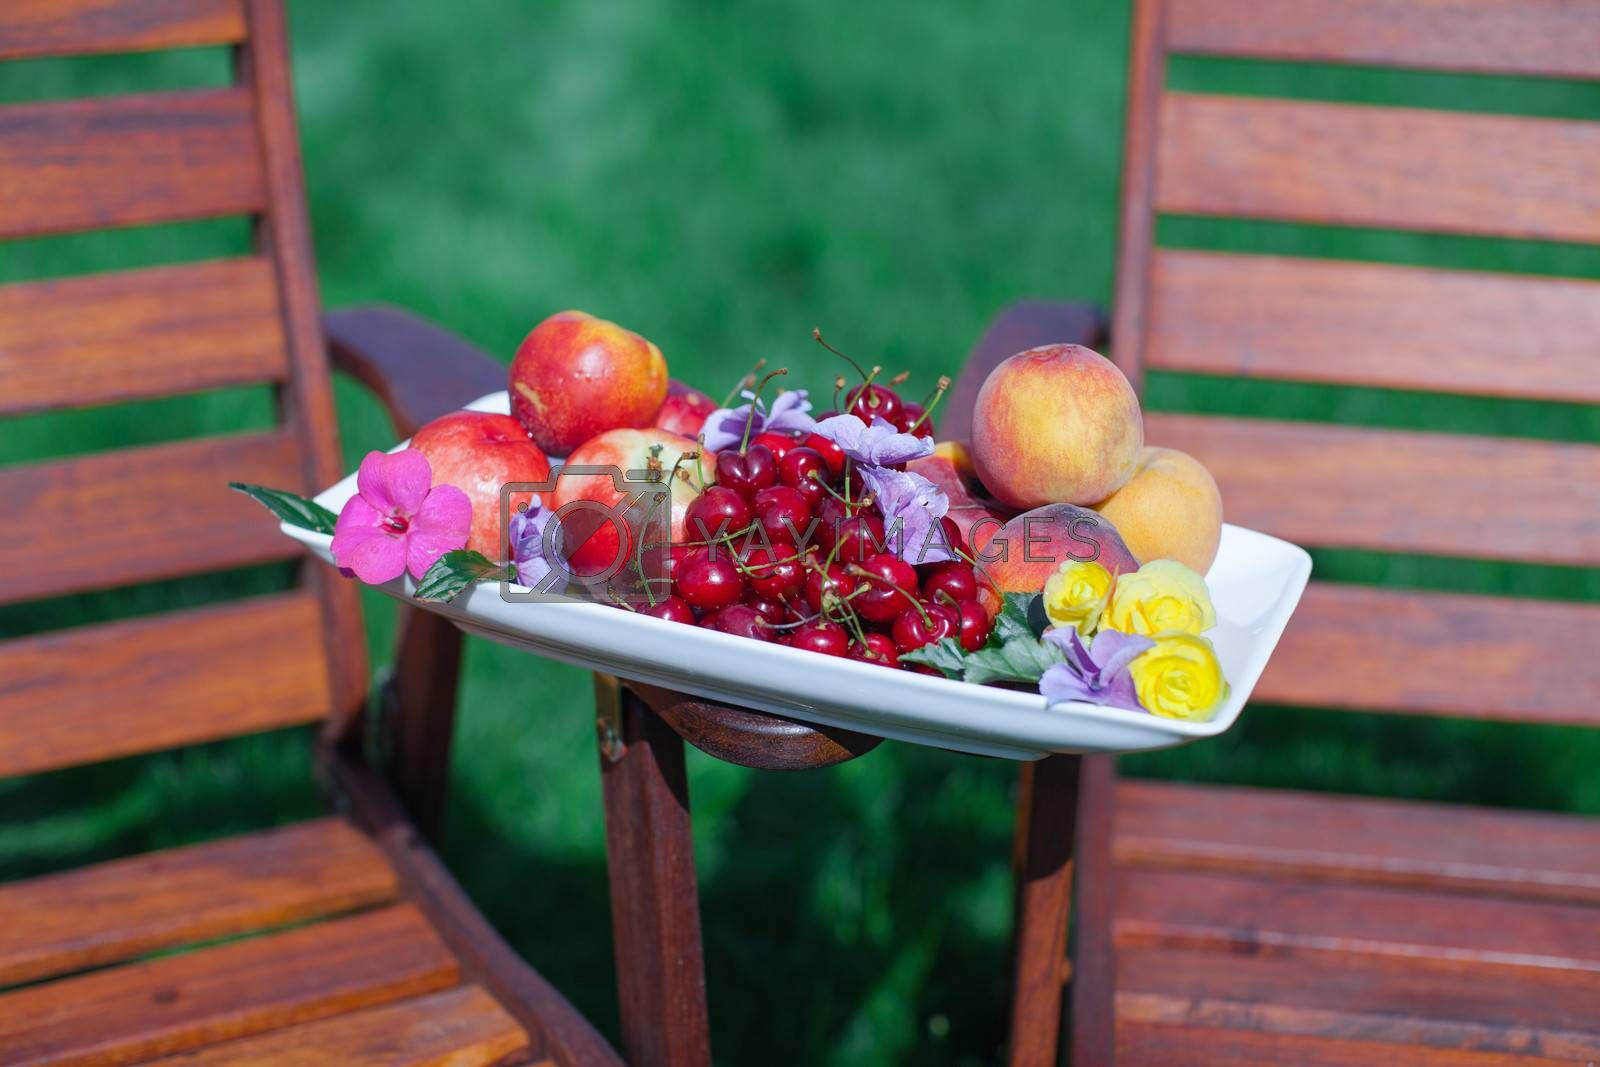 Royalty free image of Plate with fresh fruits and flowers on wooden chairs in the garden by travnikovstudio